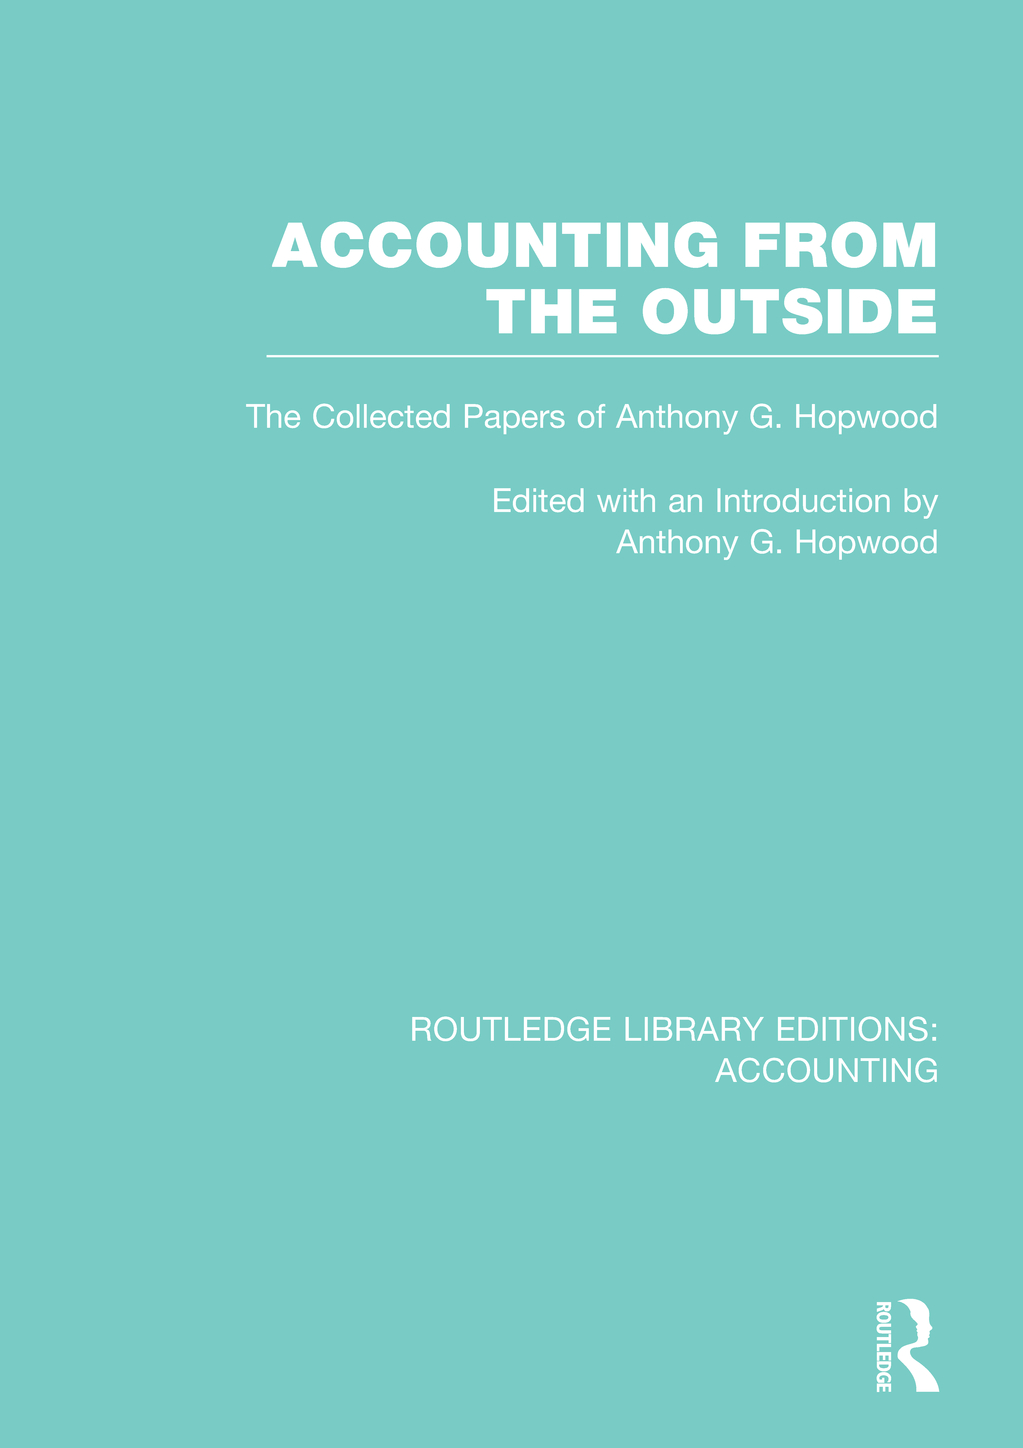 Accounting from the outside : the collected papers of Anthony G. Hopwood The Collected Papers of Anthony G. Hopwood